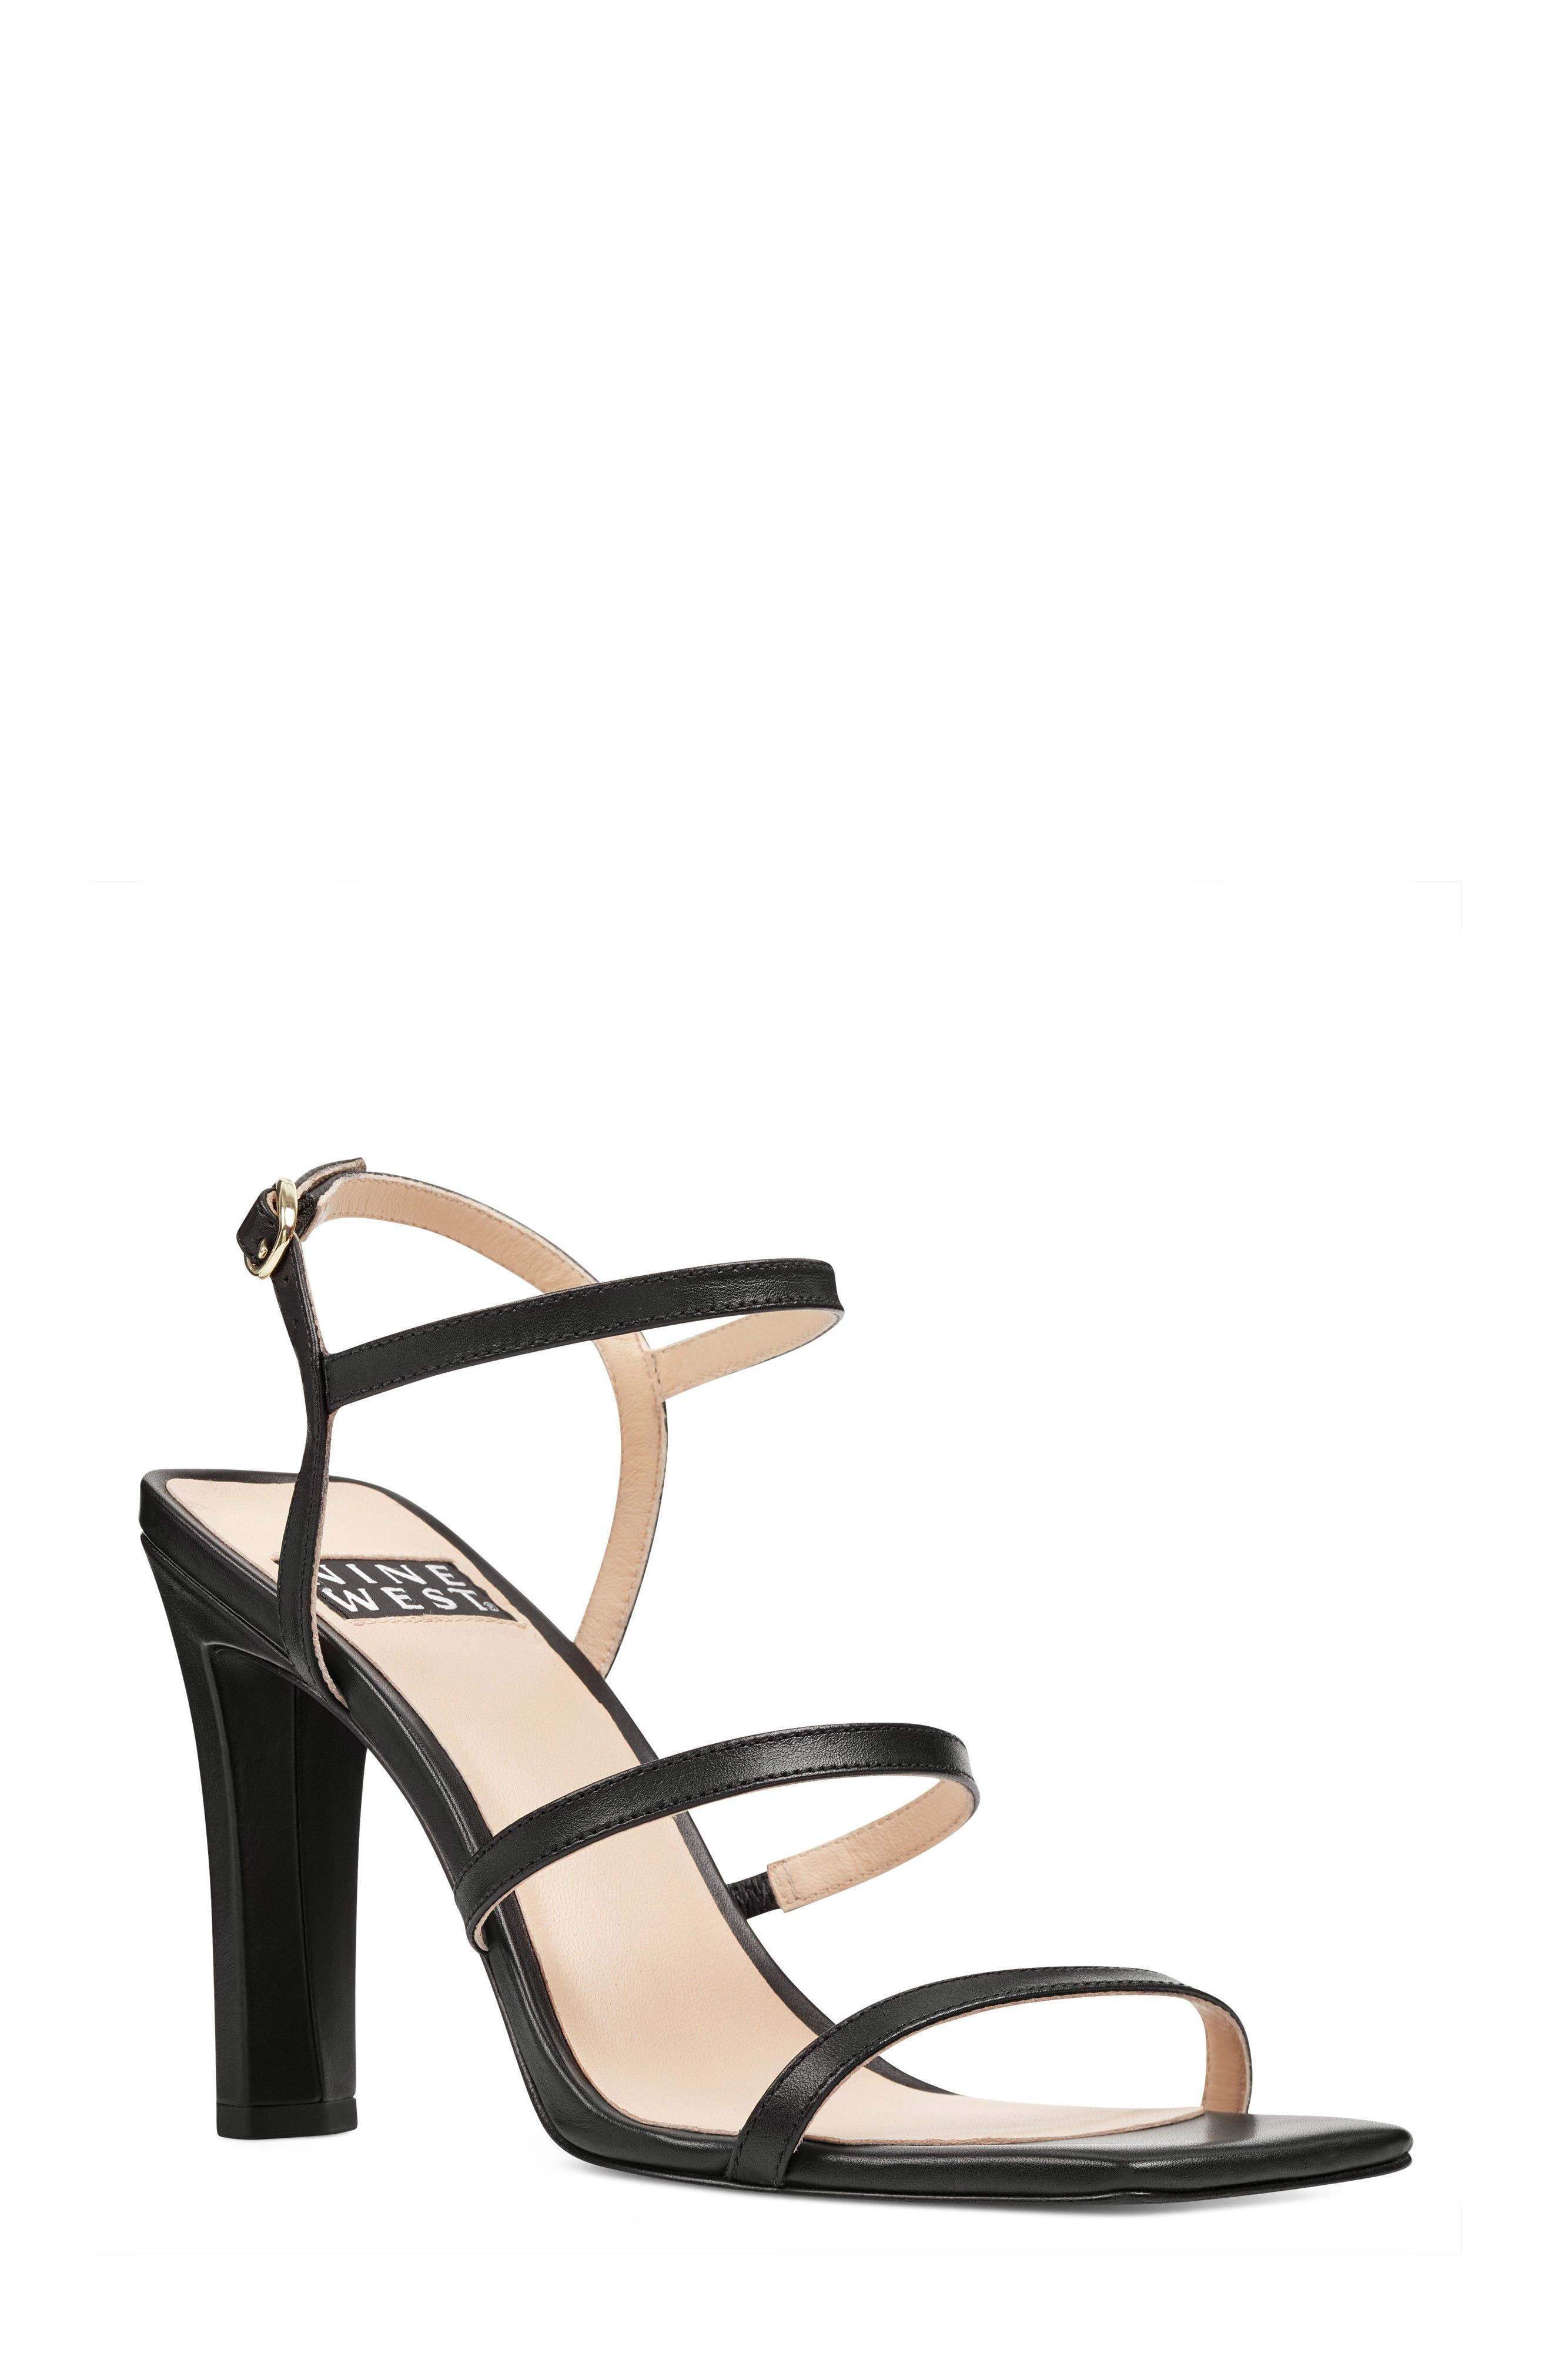 Gabelle - 40th Anniversary Capsule Collection Sandal,                             Main thumbnail 1, color,                             BLACK LEATHER